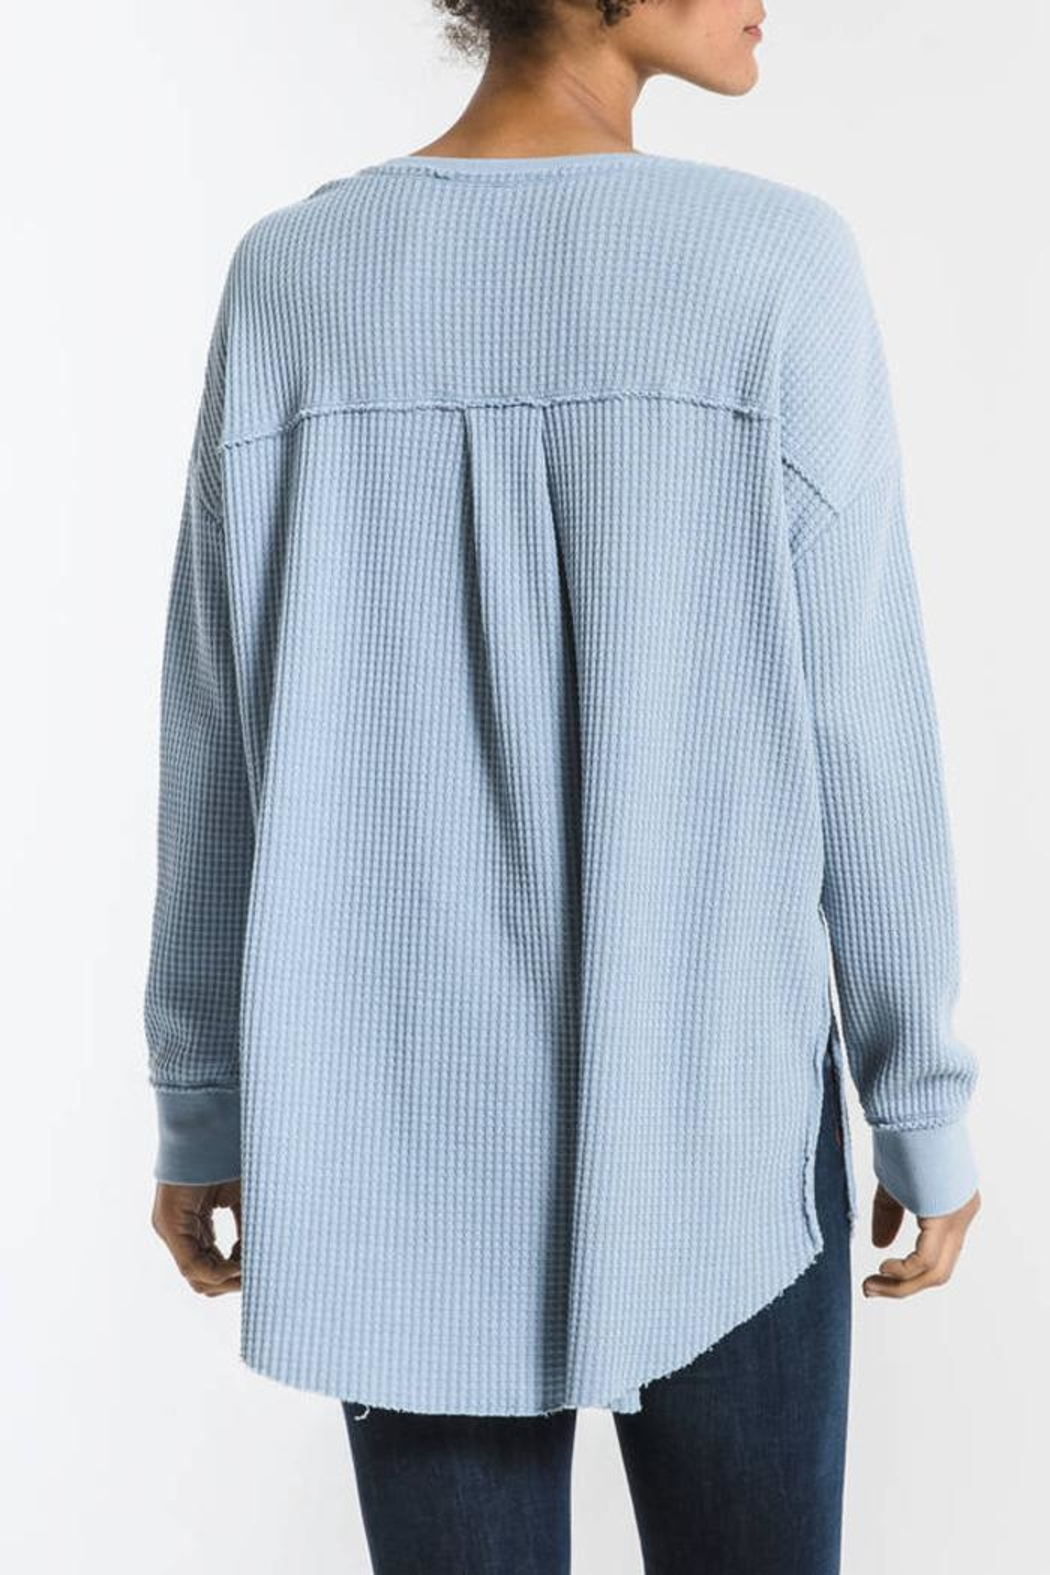 z supply Waffle Thermal Tunic - Side Cropped Image